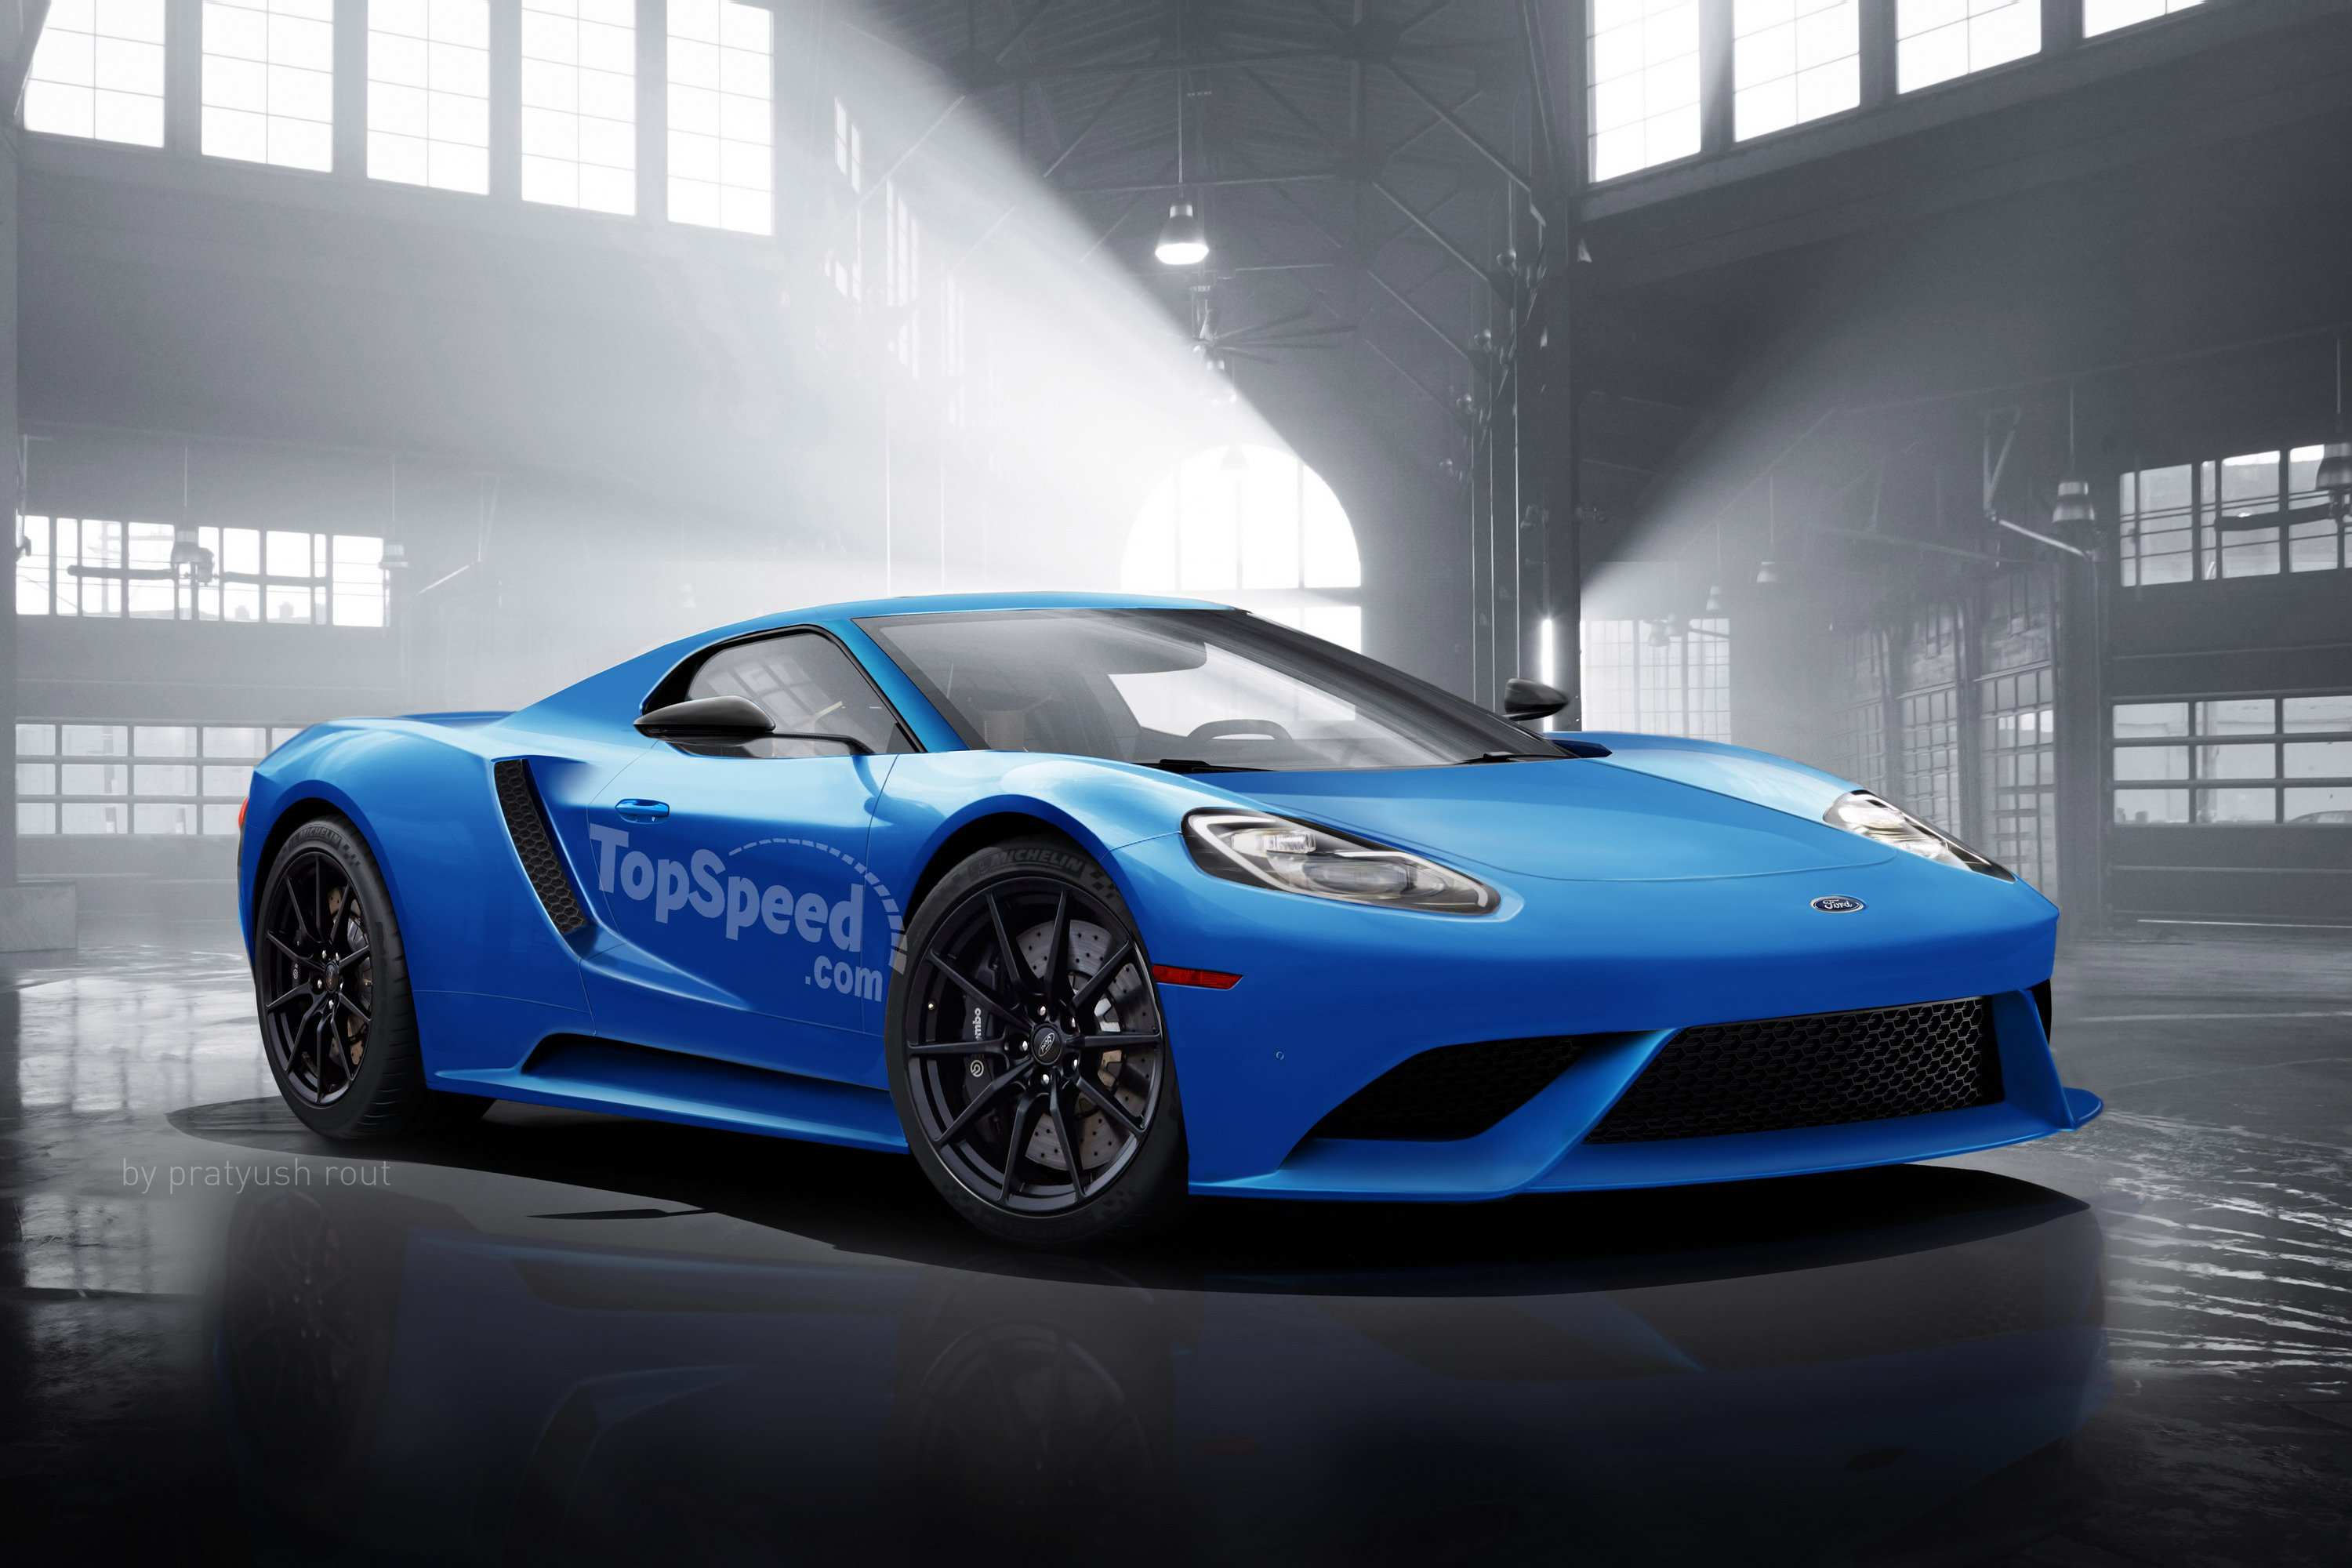 76 Concept of Ford Gt 2020 Redesign with Ford Gt 2020